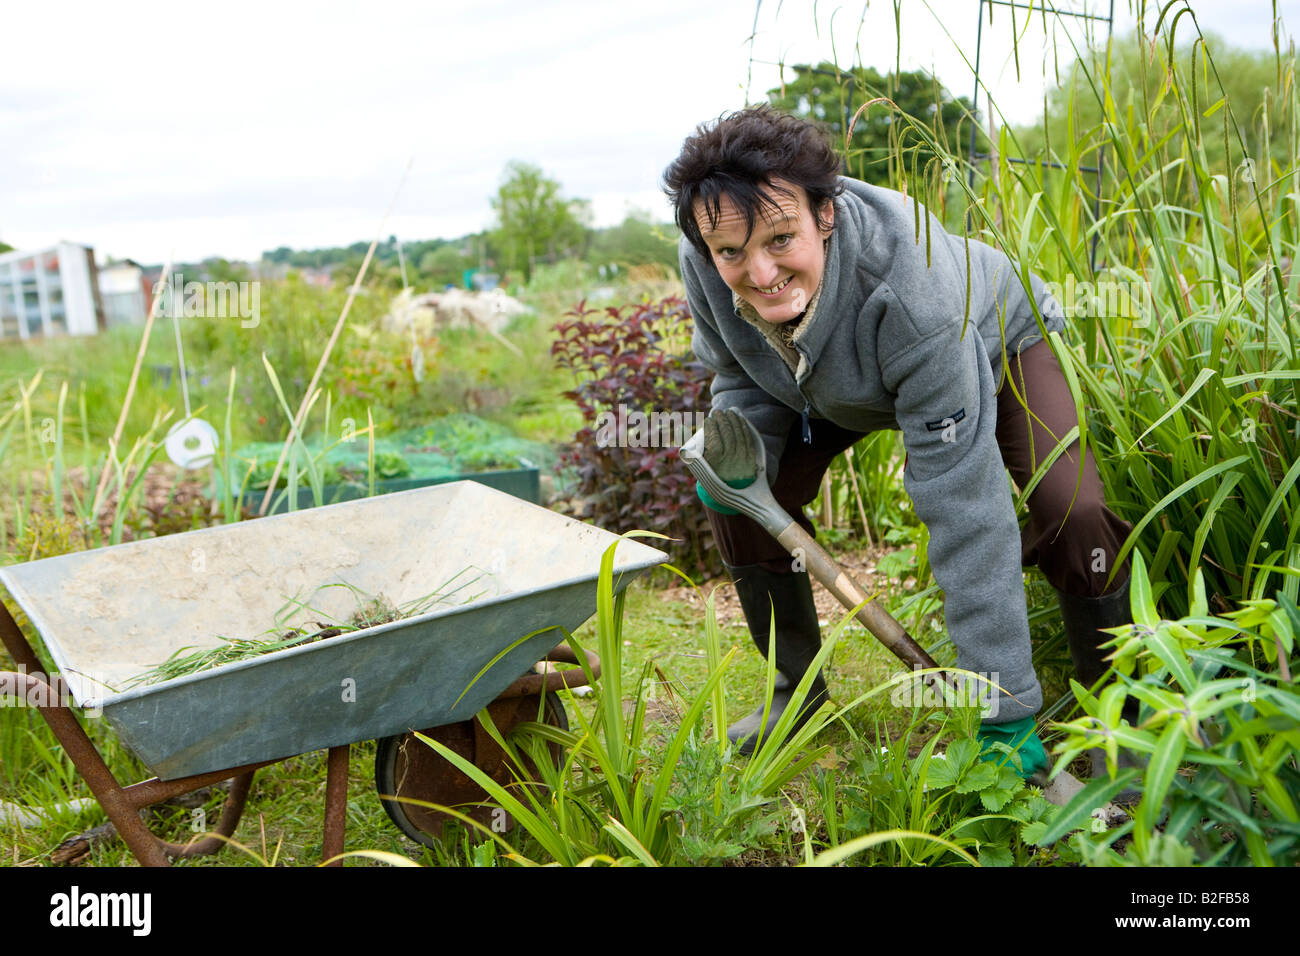 lady gardener digging in her allotment plot - Stock Image